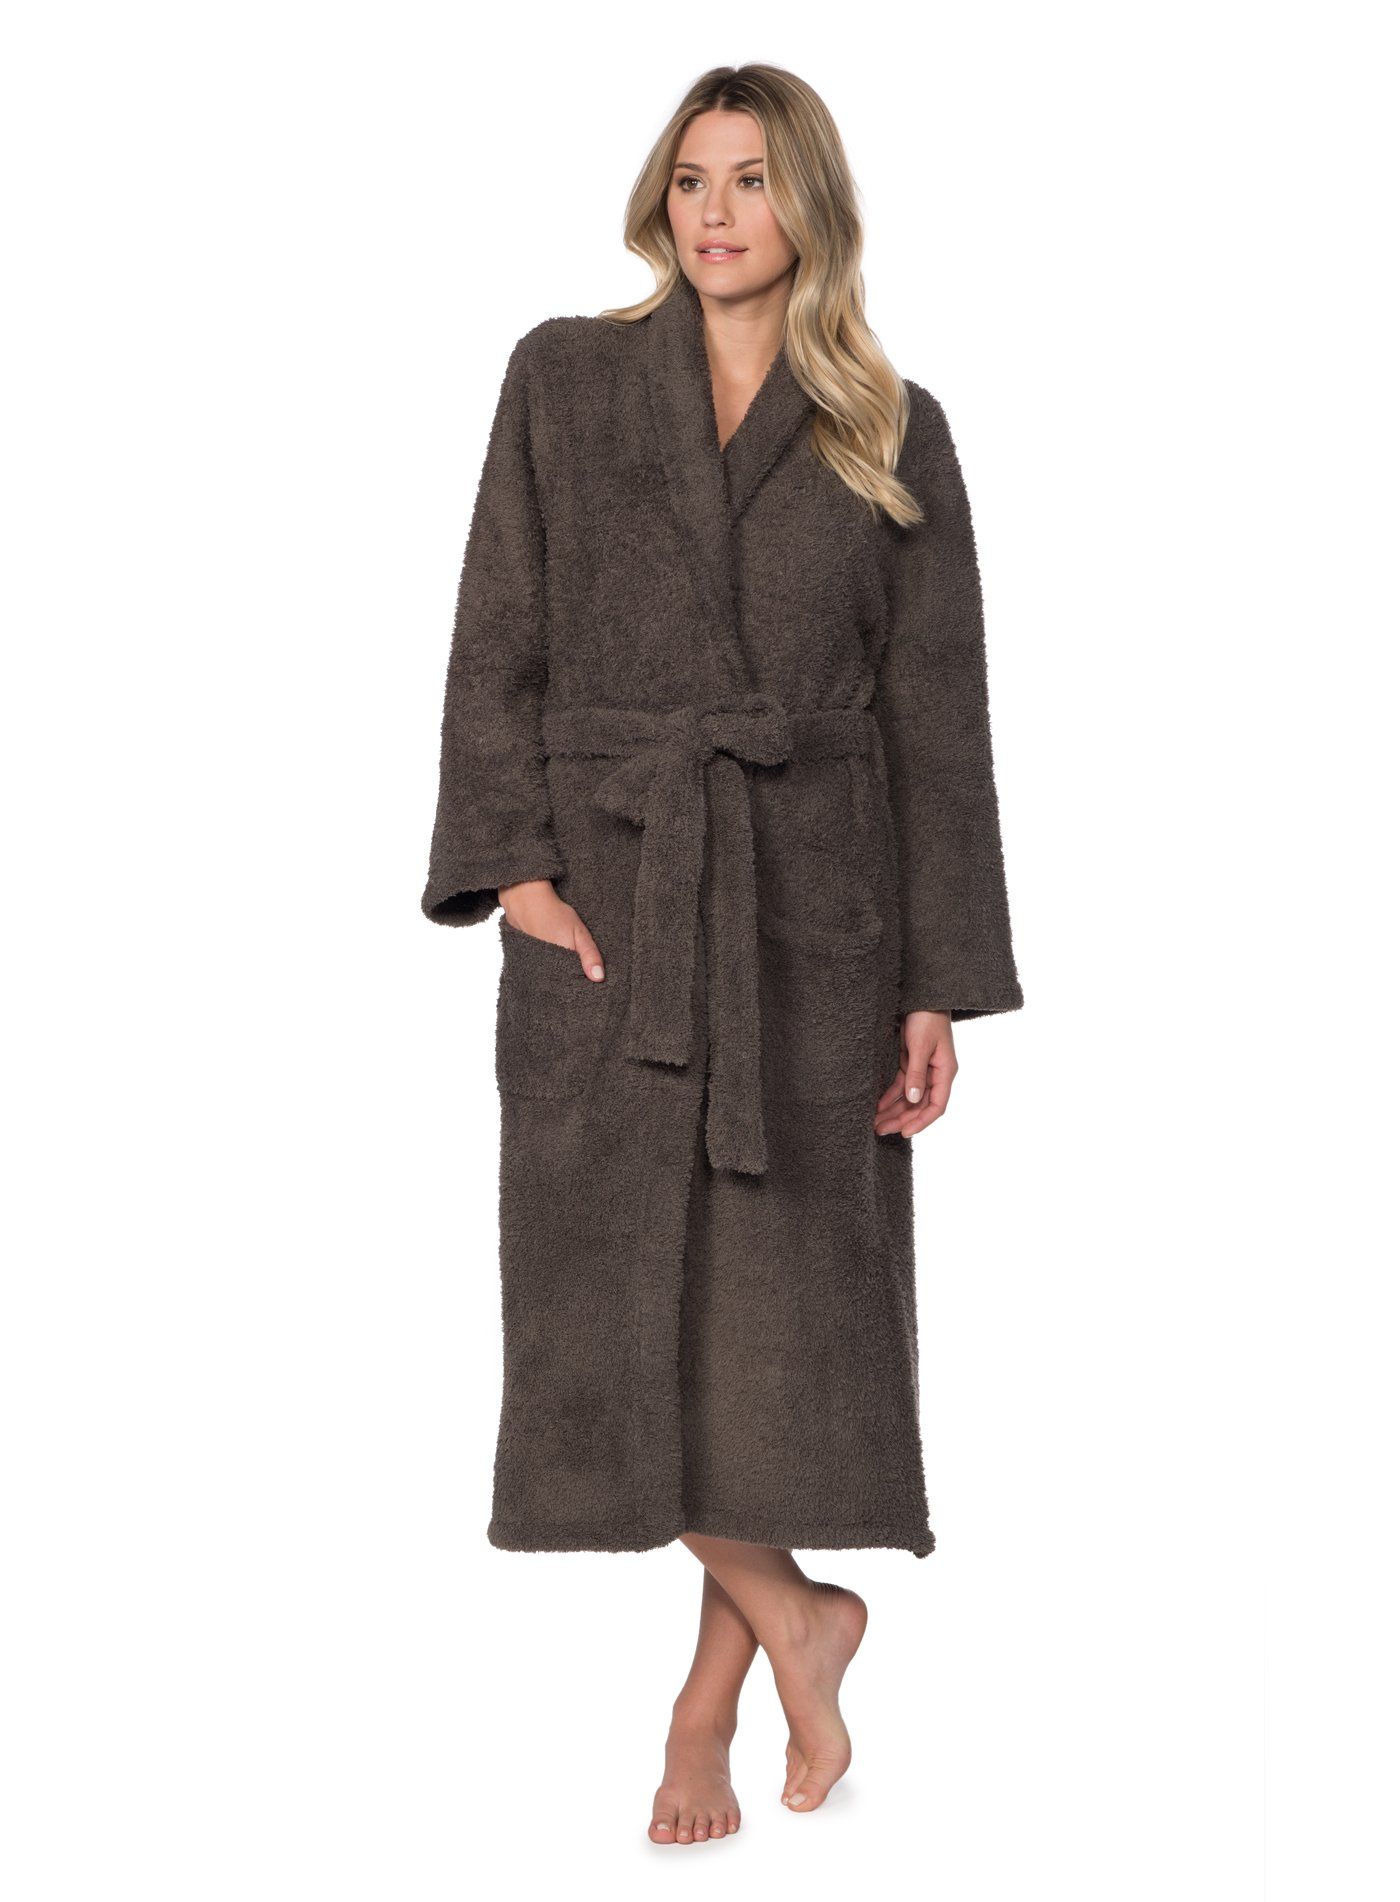 Barefoot Dreams CozyChic Adult Robe (Cocoa, 3)